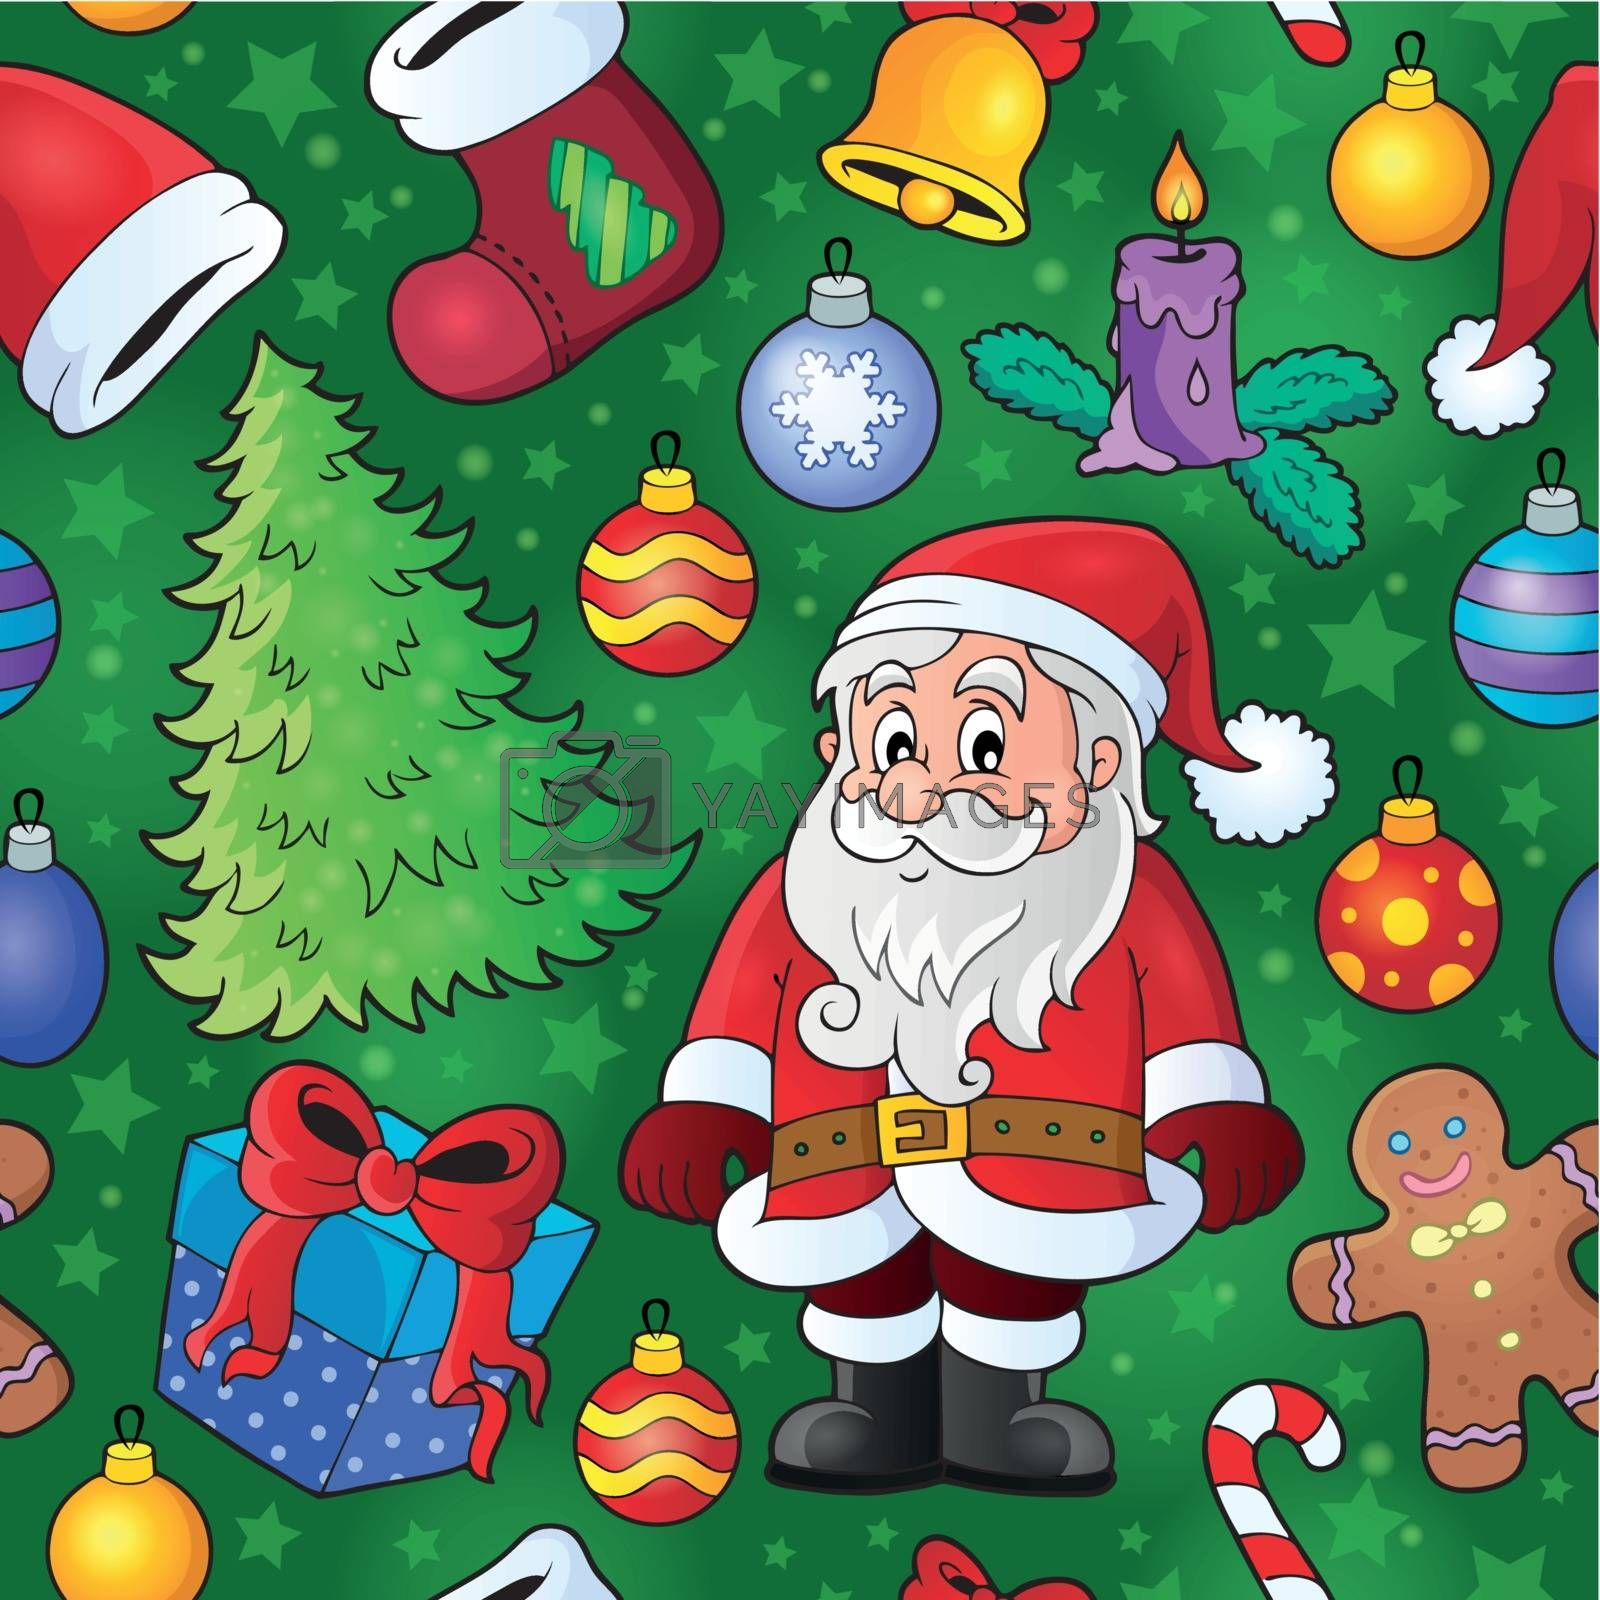 Christmas seamless background 8 - eps10 vector illustration.